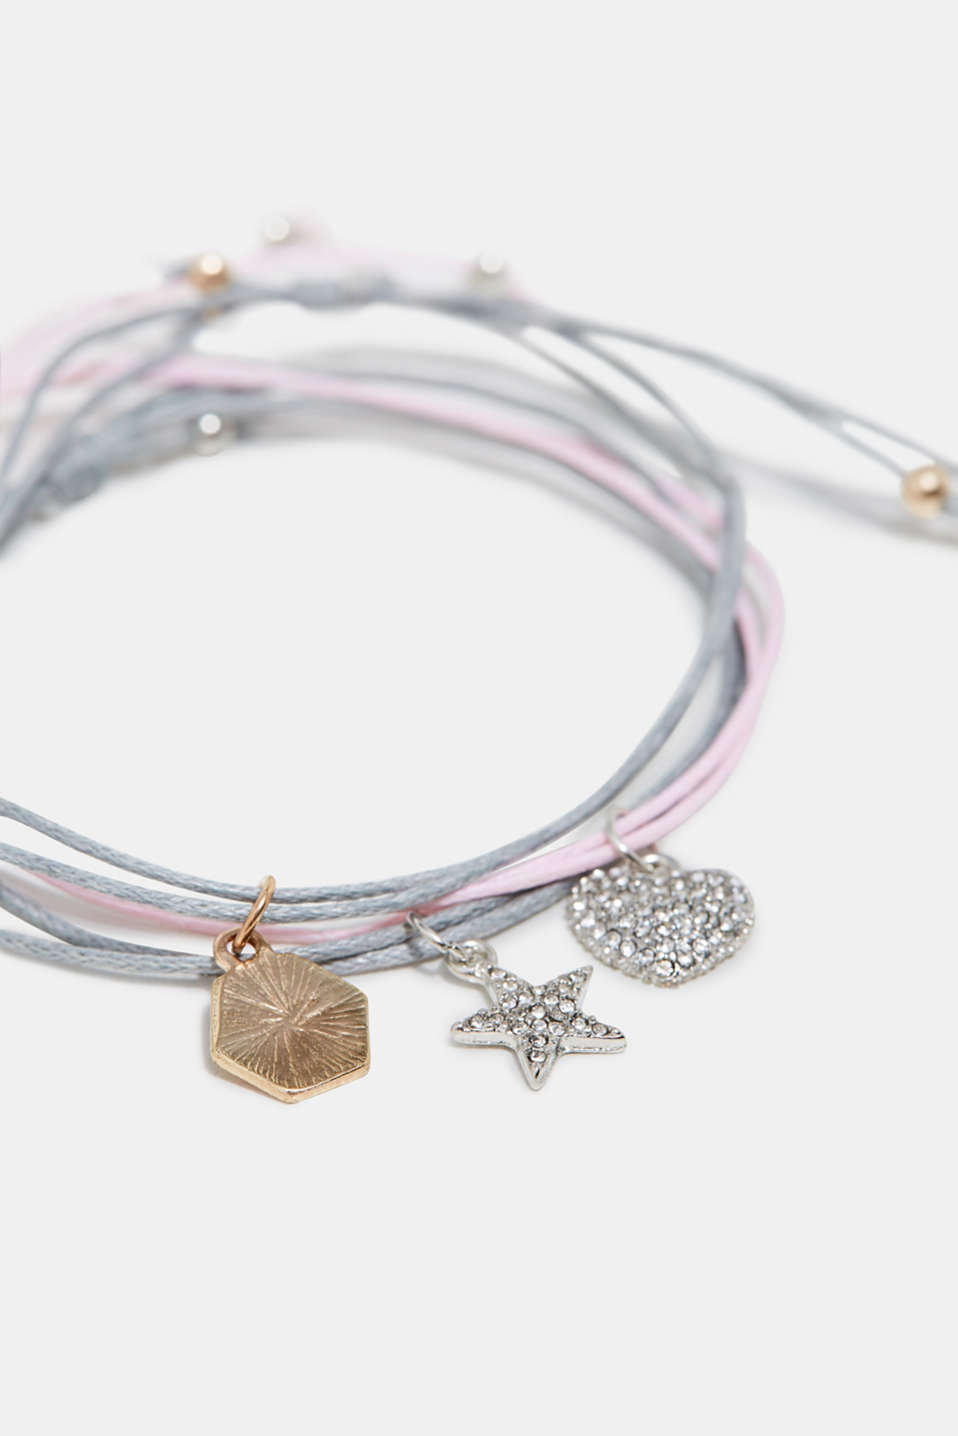 Three bracelets with charms